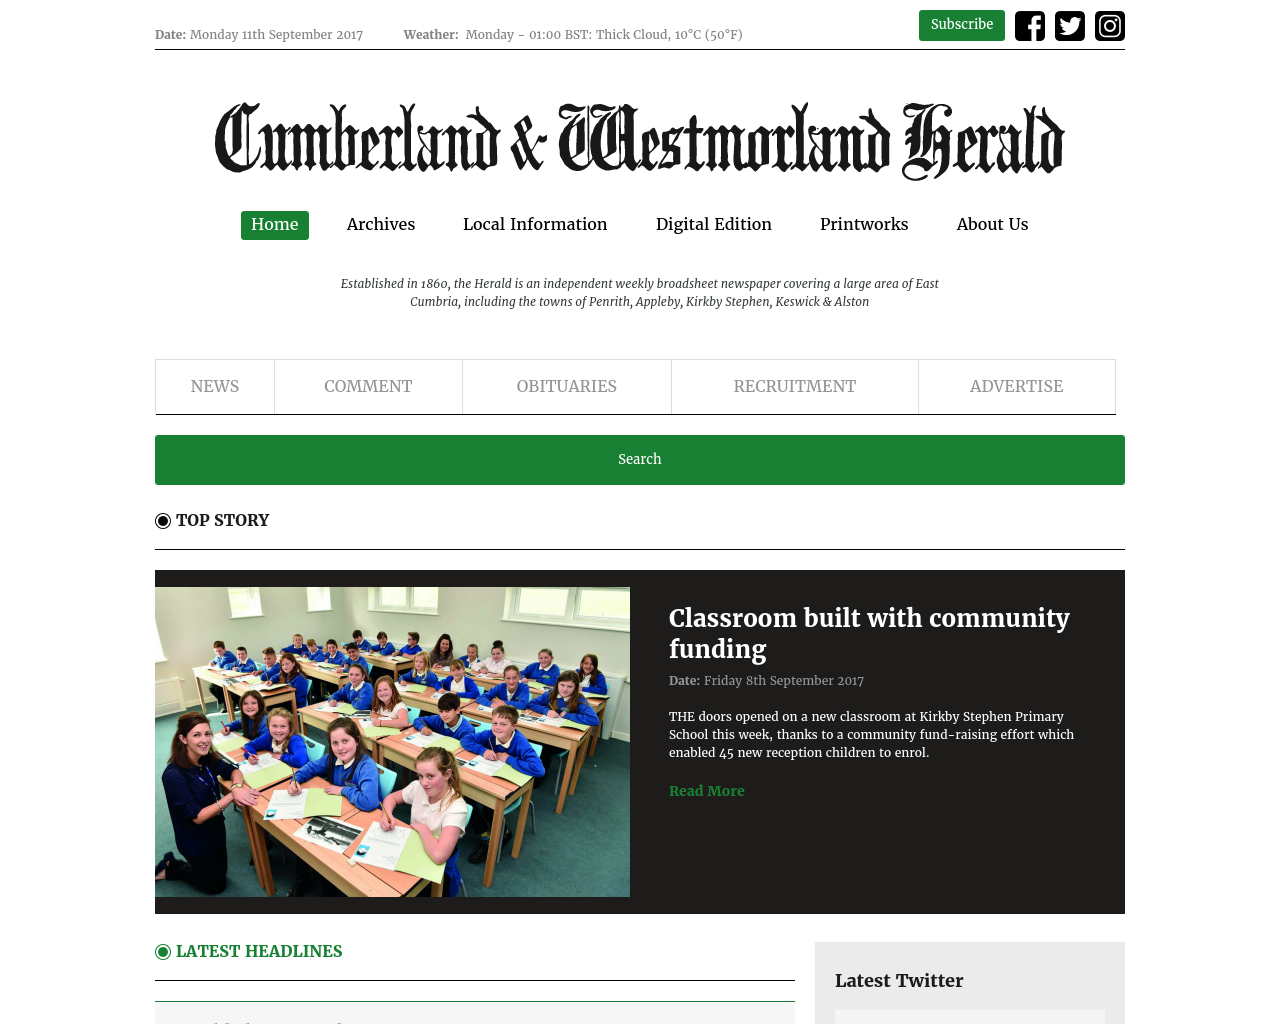 The-Cumberland-And-Westmorland-Herald-Advertising-Reviews-Pricing